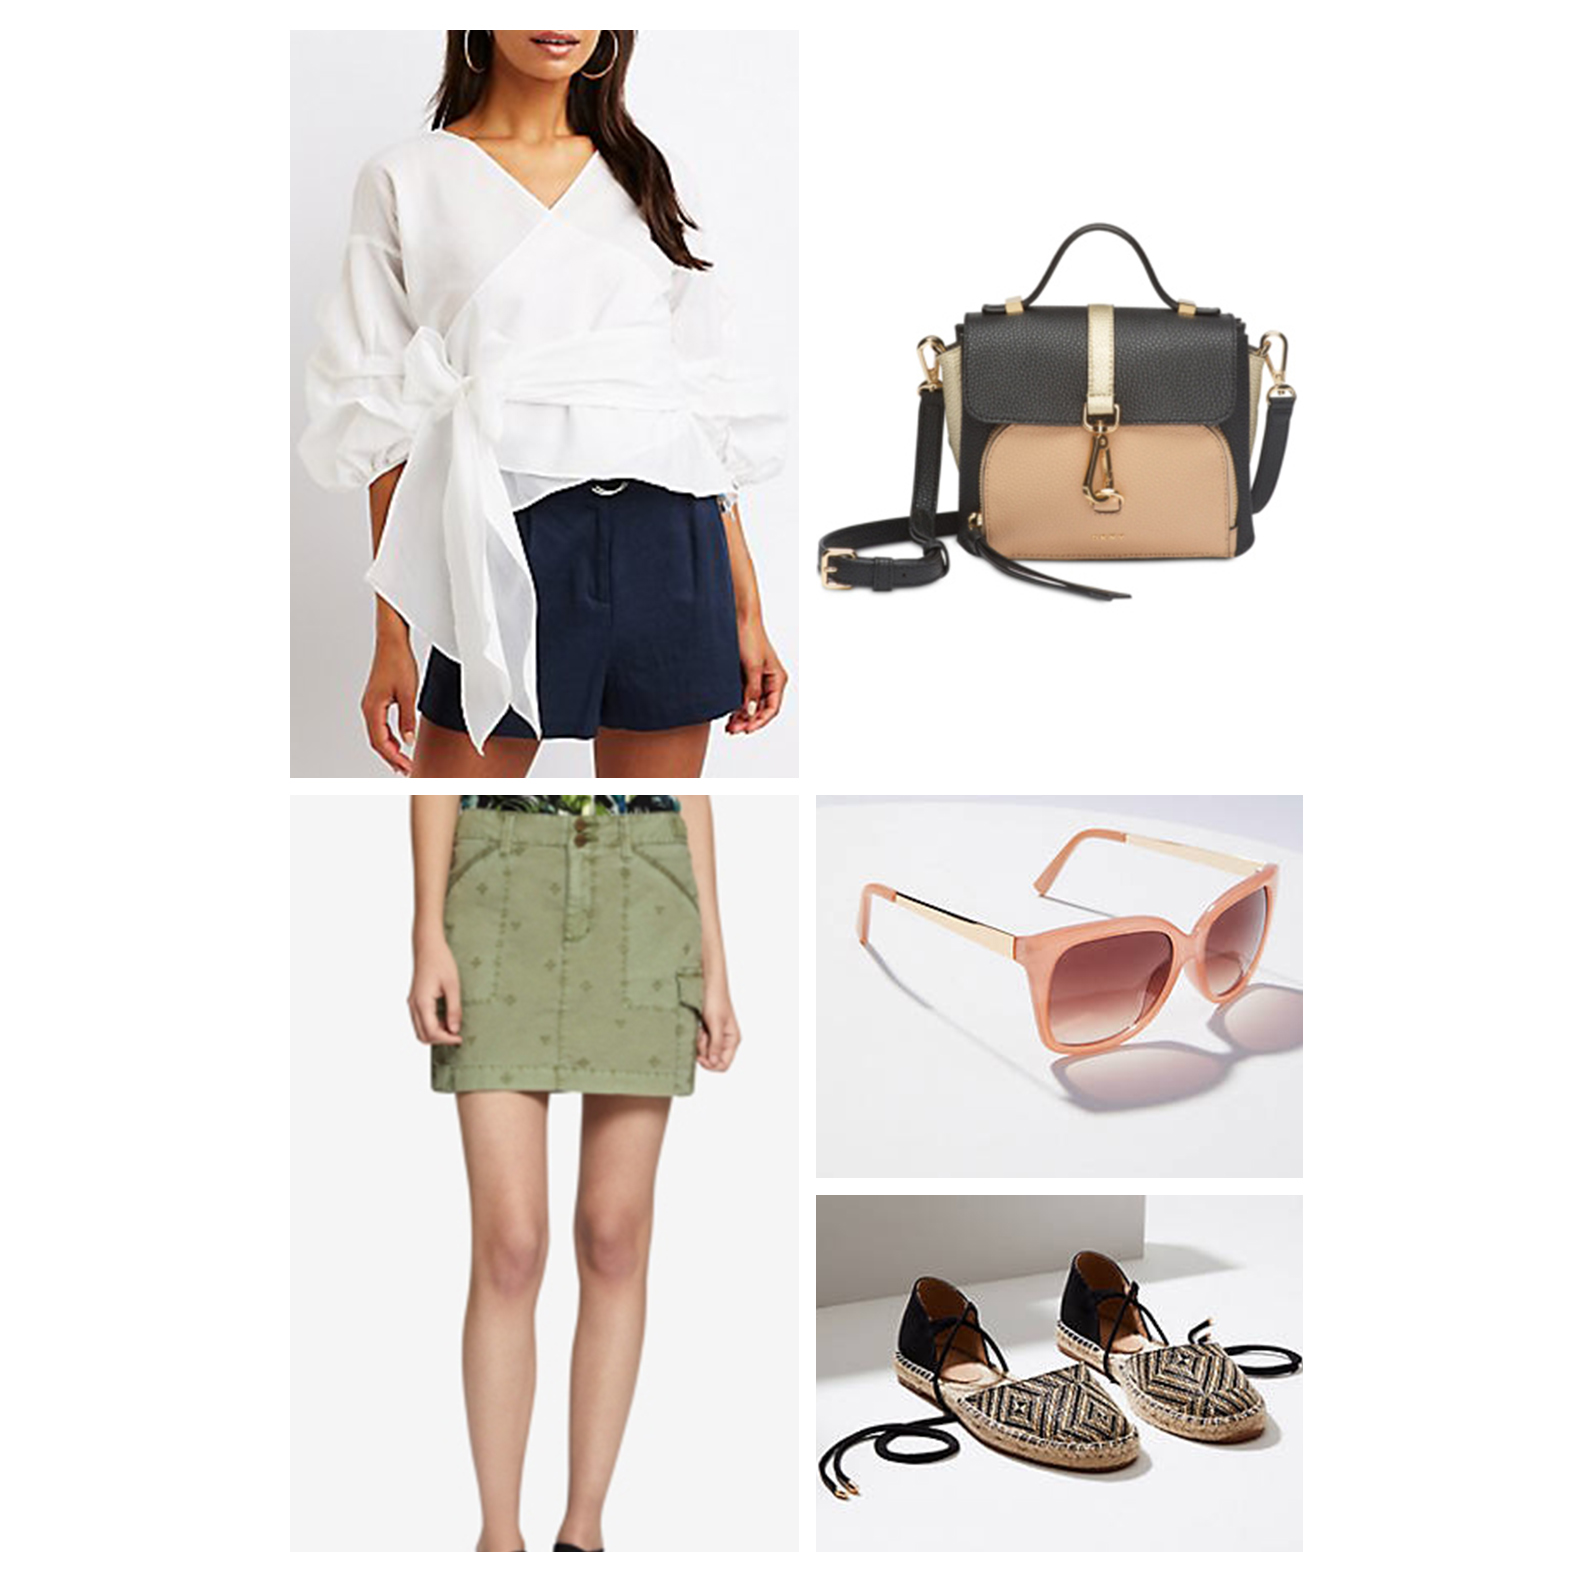 weekend-outfit-olive-green-mini-skirt-white-blouse-pink-sunglasses-.jpg